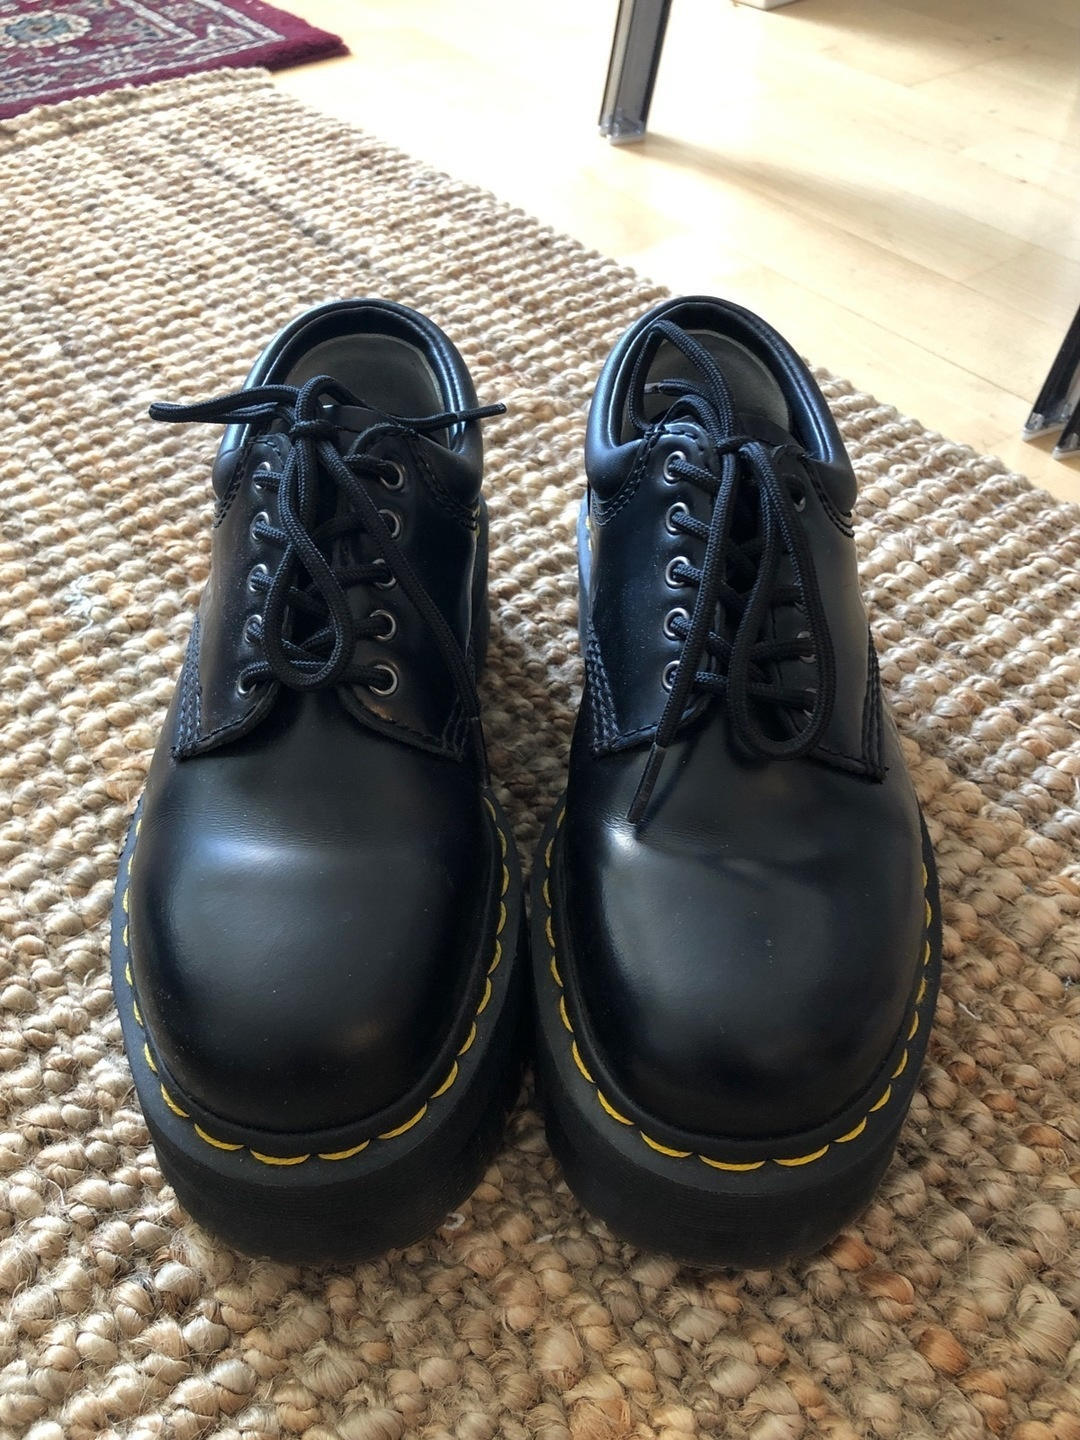 Women's sneakers - DR. MARTENS photo 3